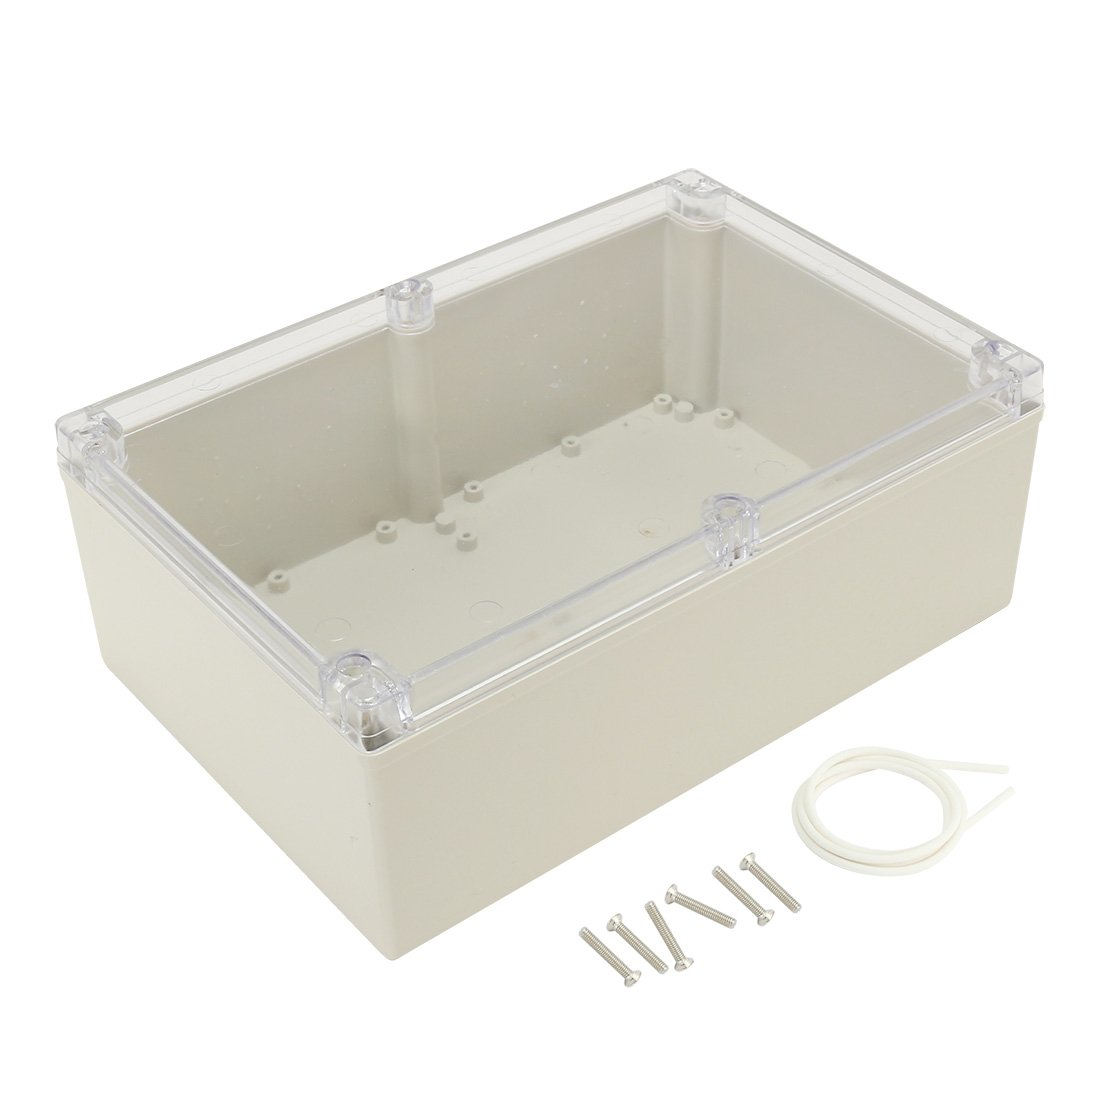 uxcell 9.4''x6.3''x3.54''(240mmx160mmx90mm) ABS Junction Box Electric Project Enclosure Clear